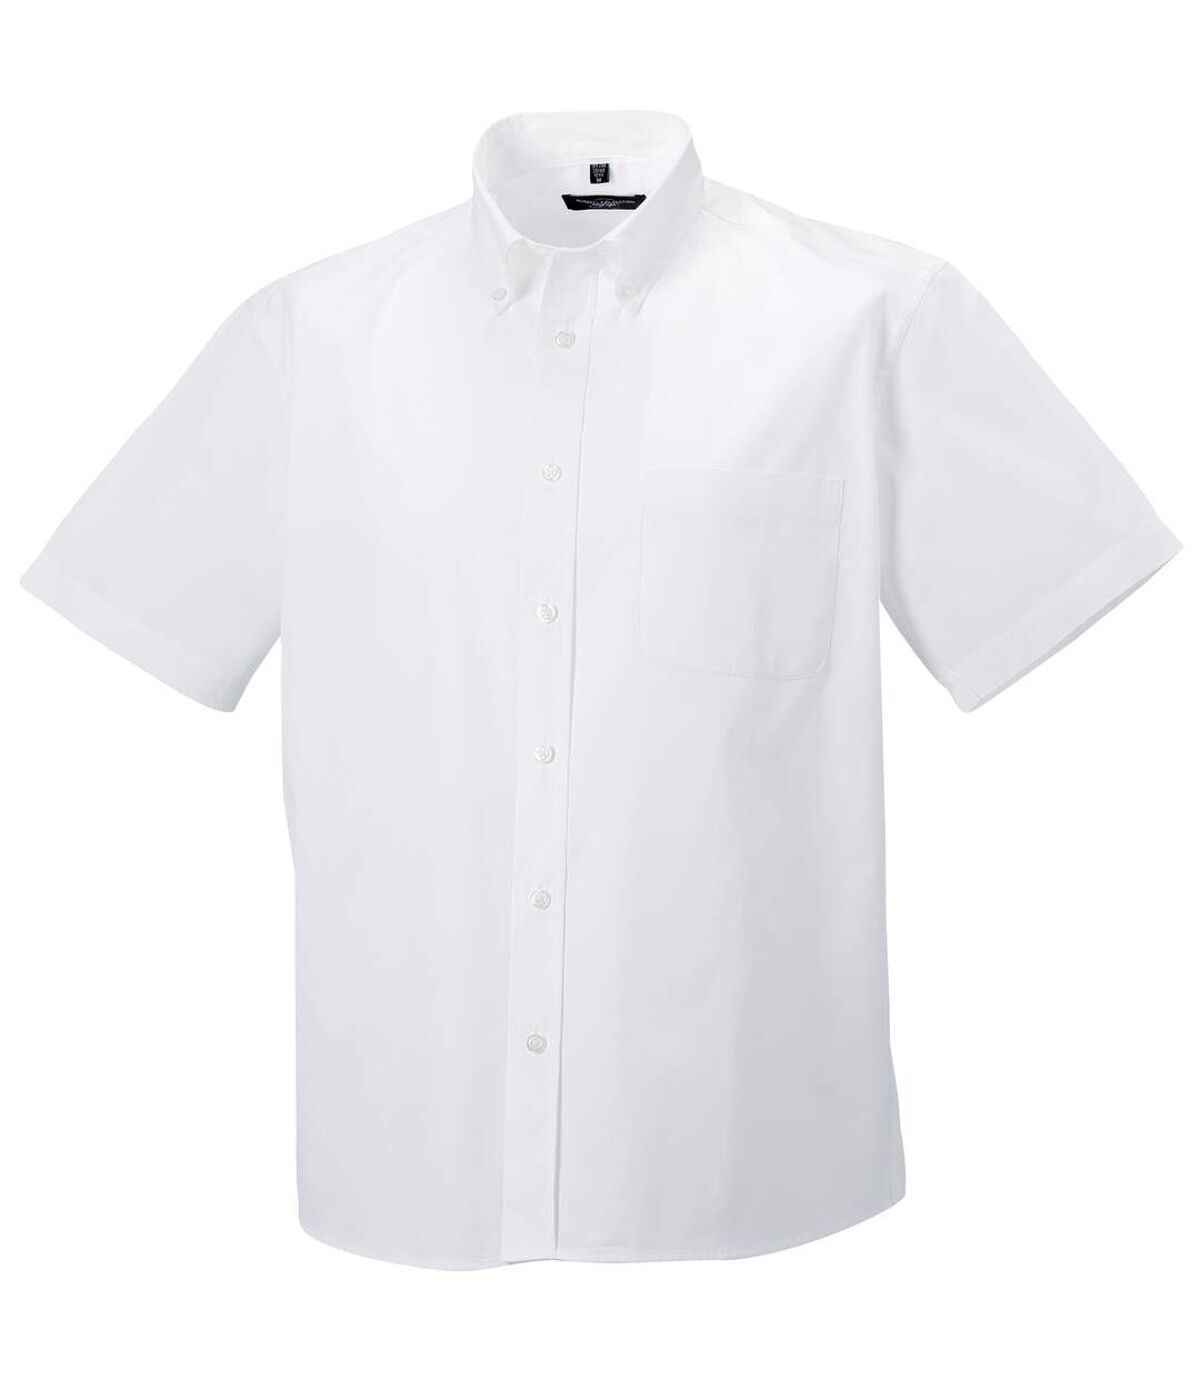 Russell Collection Mens Short Sleeve Classic Twill Shirt (White) - UTRW3258